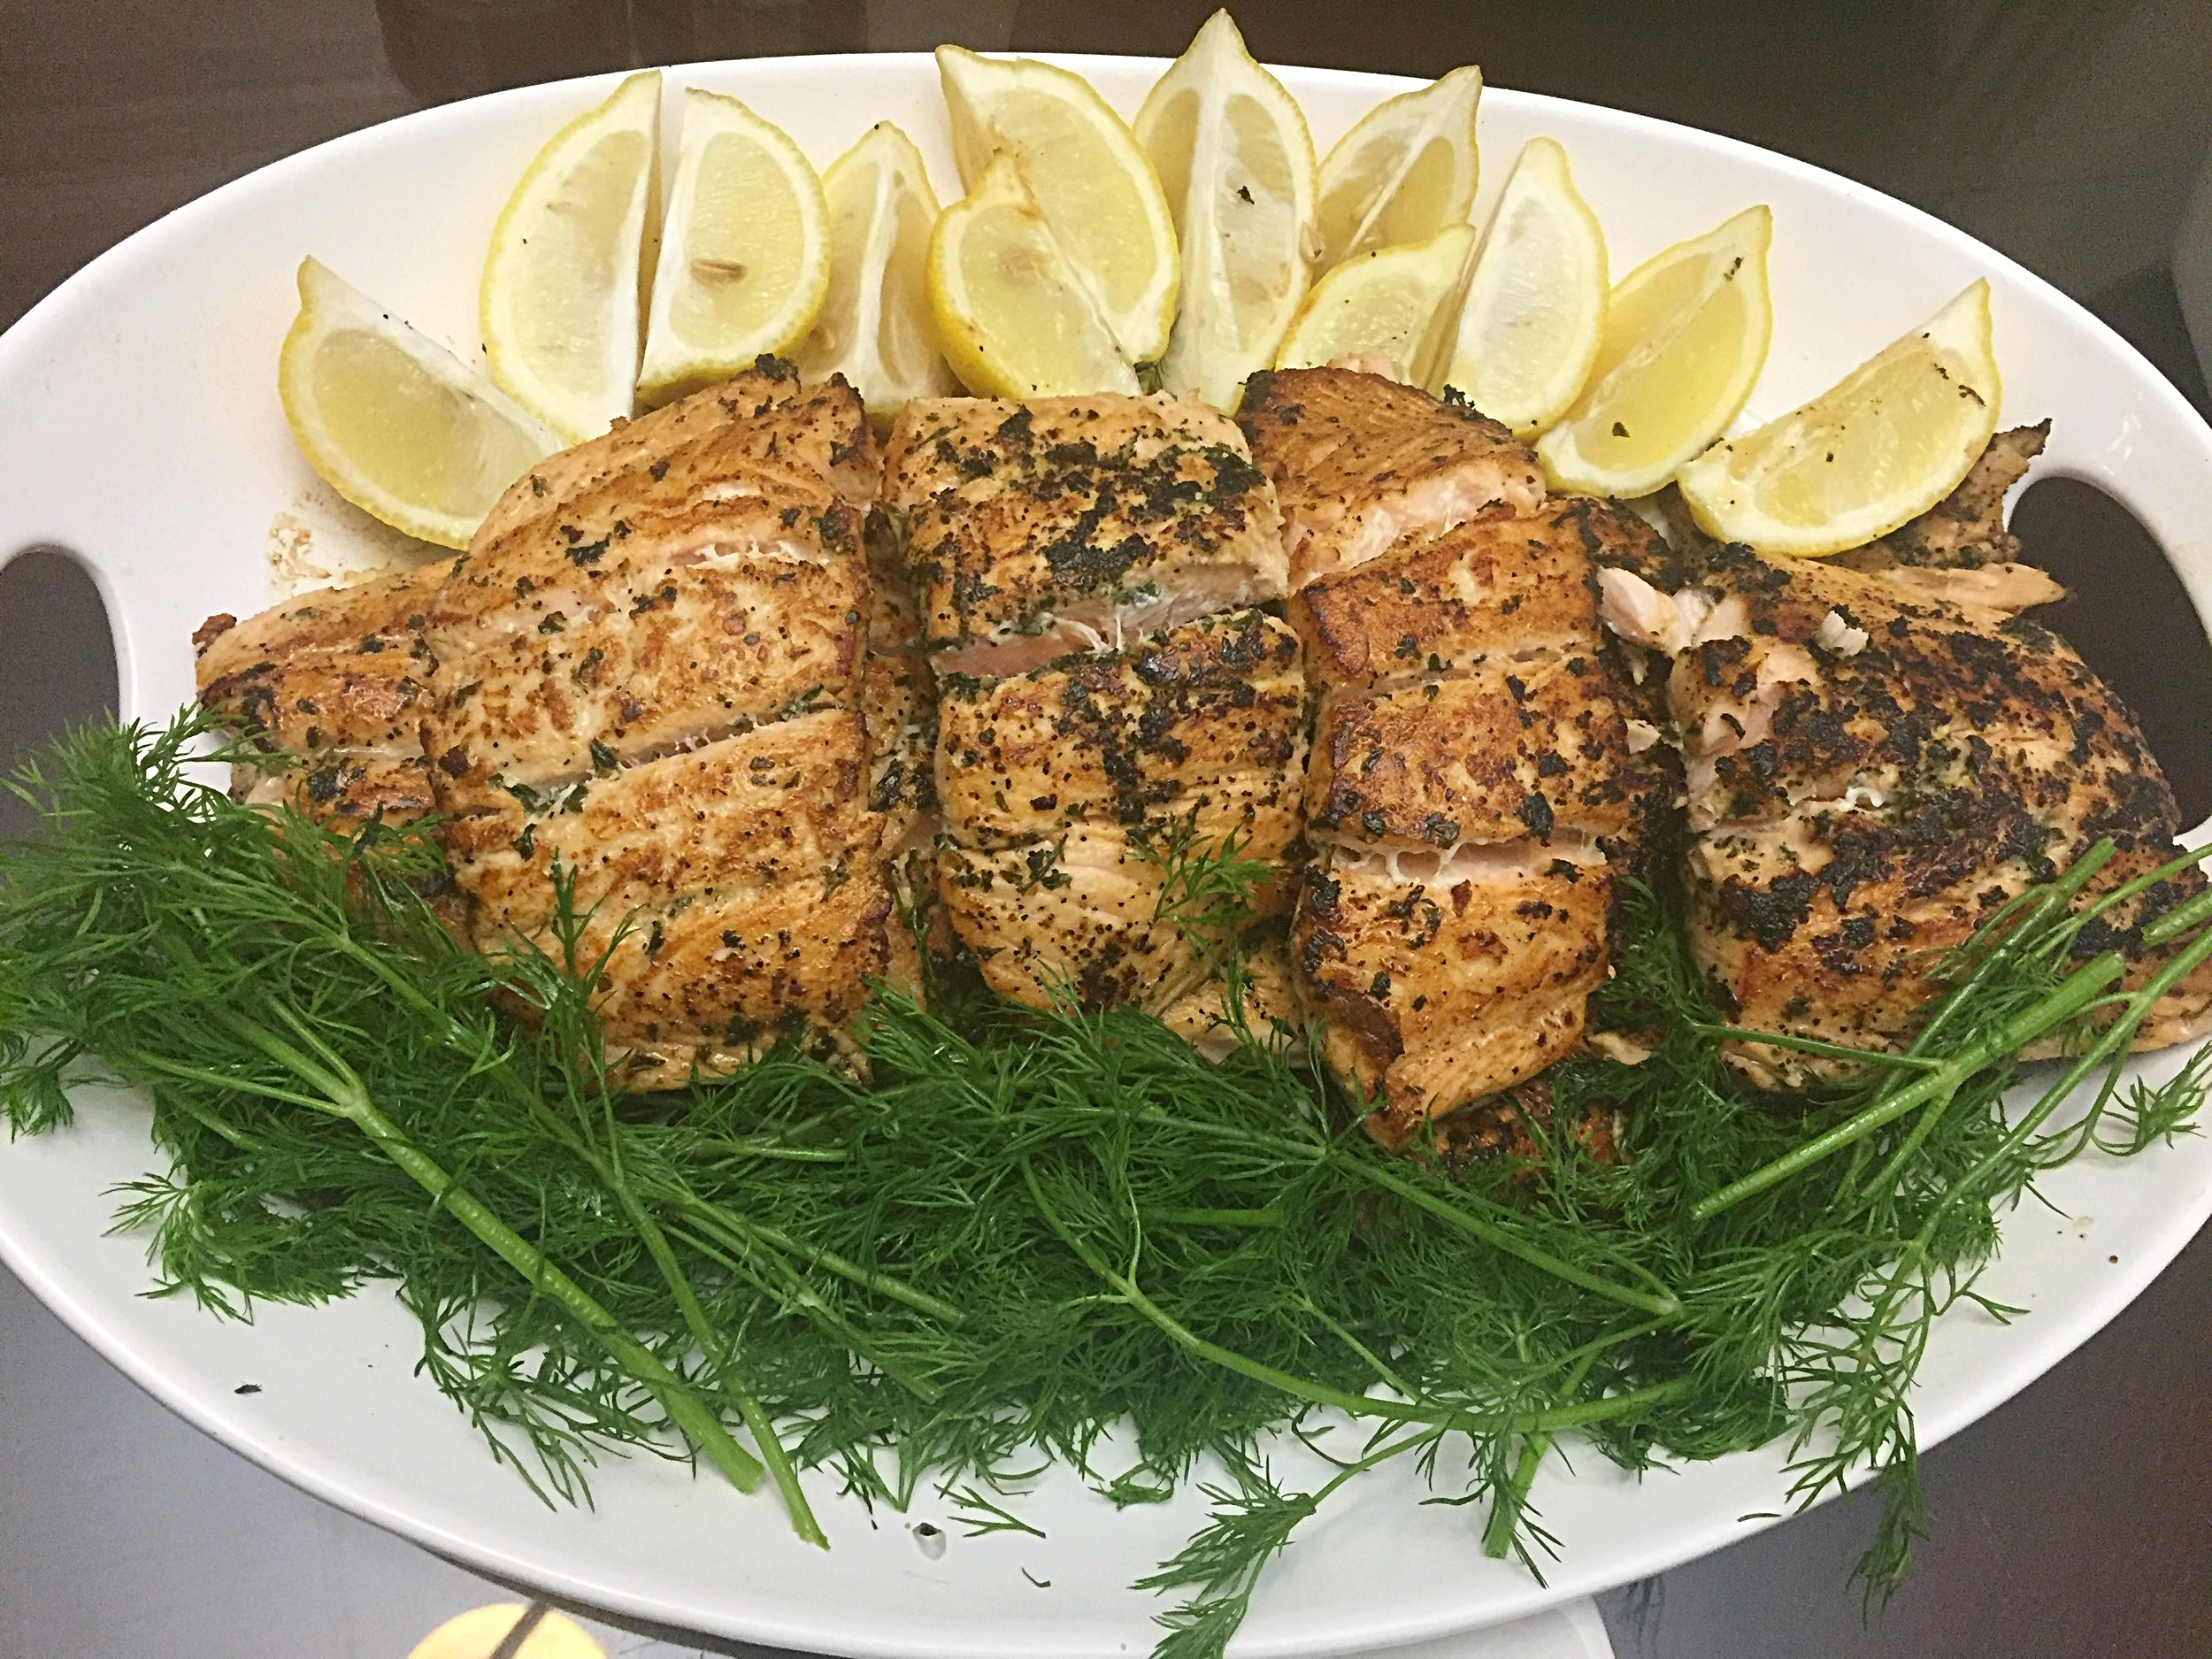 Sema's Simple and Delicious Salmon